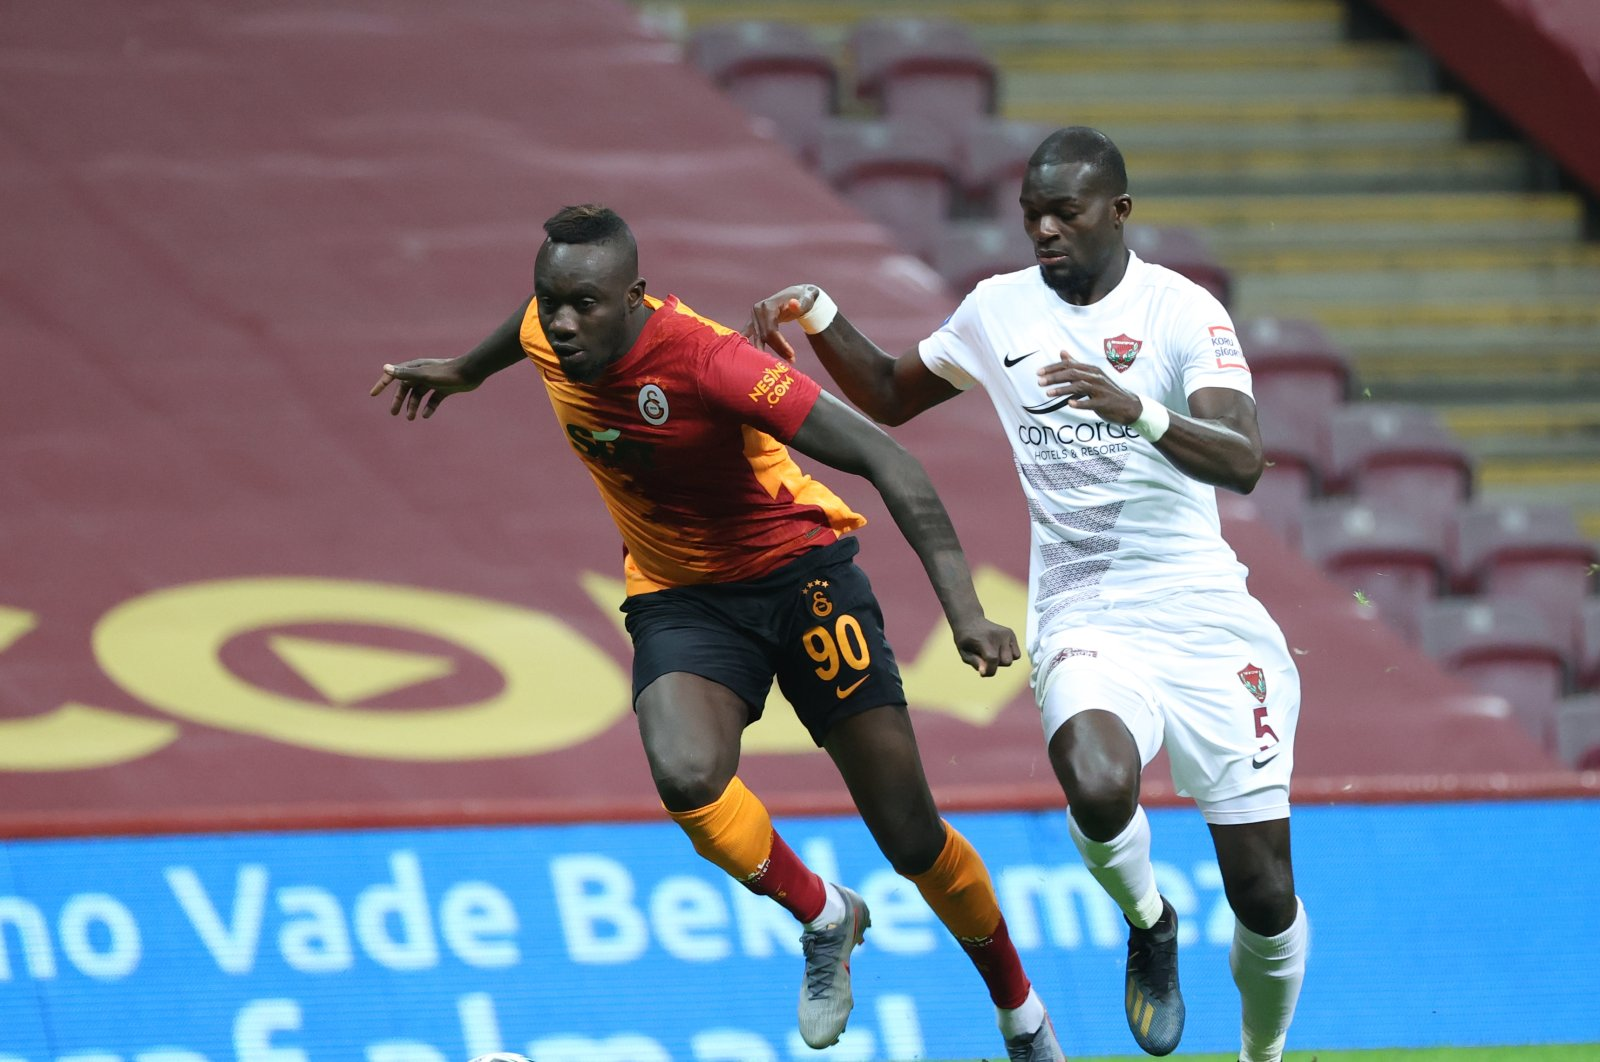 Mbaye Diagne (L) in action against Hatayspor's Isaac Sackey, in Istanbul, Turkey, Dec. 5, 2020. (AA PHOTO)